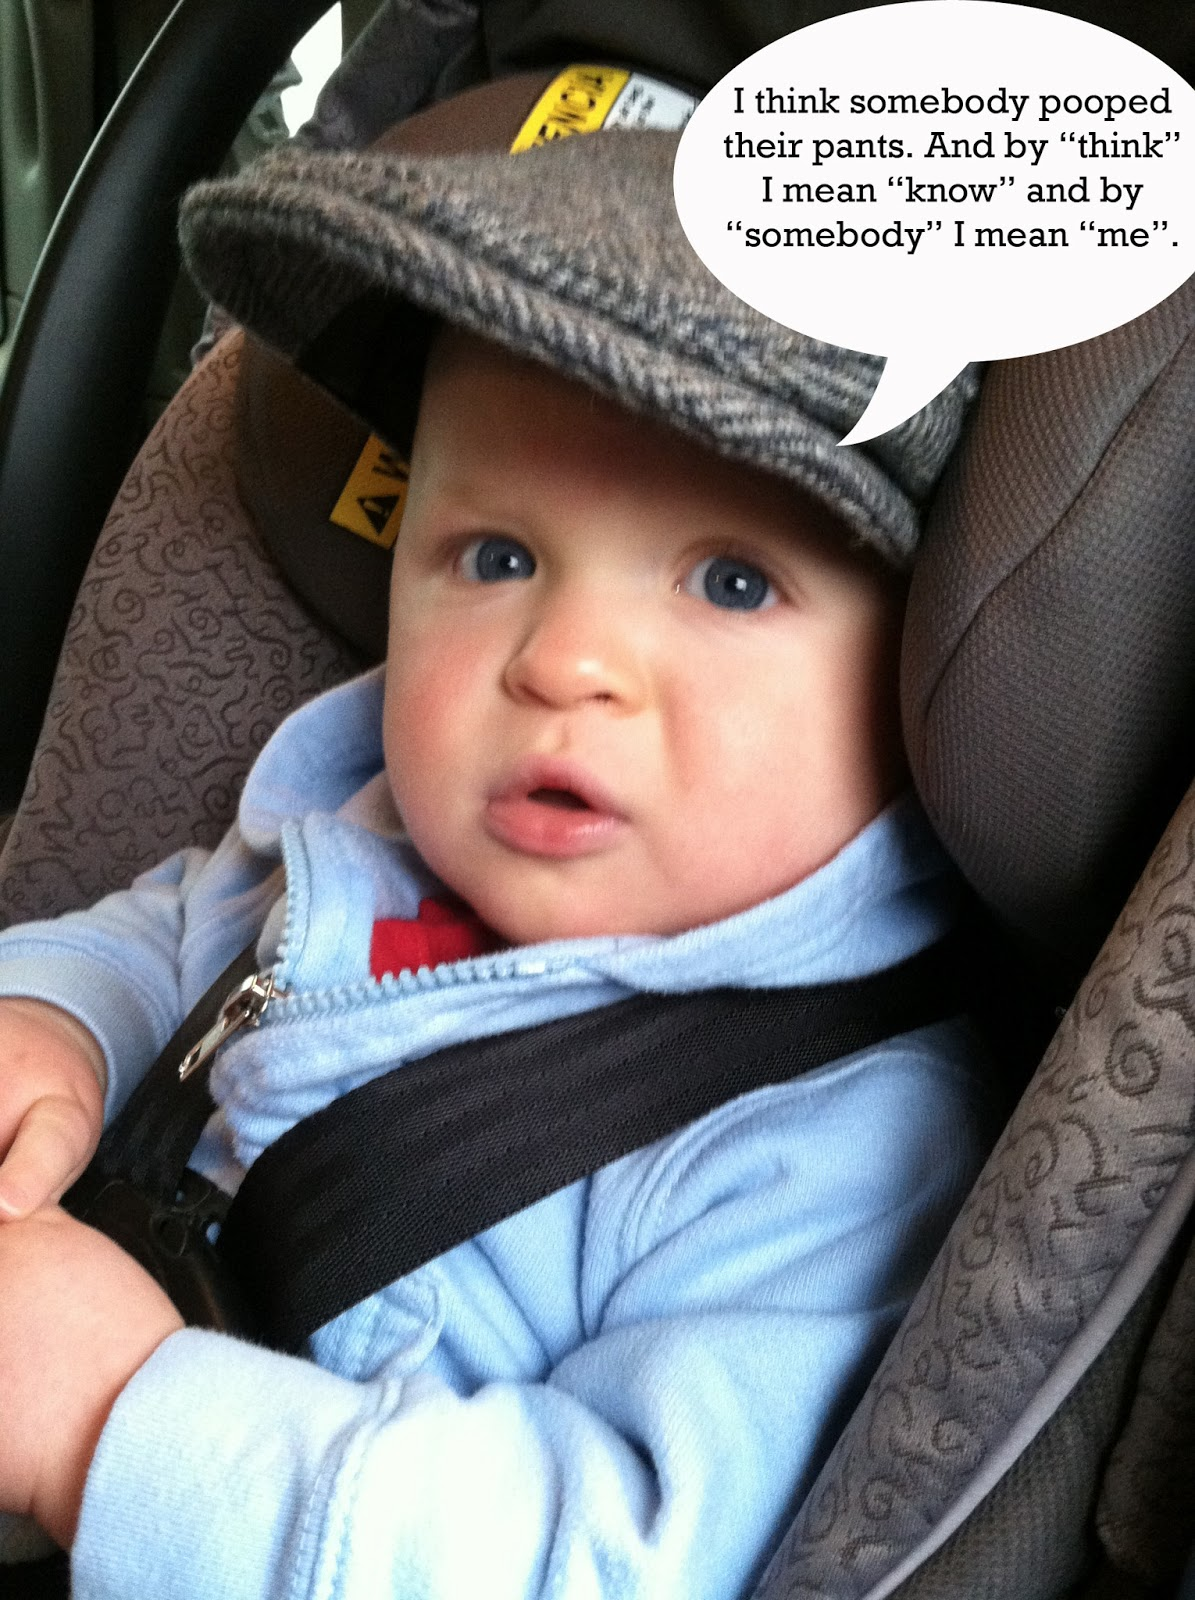 funny baby faces with captions